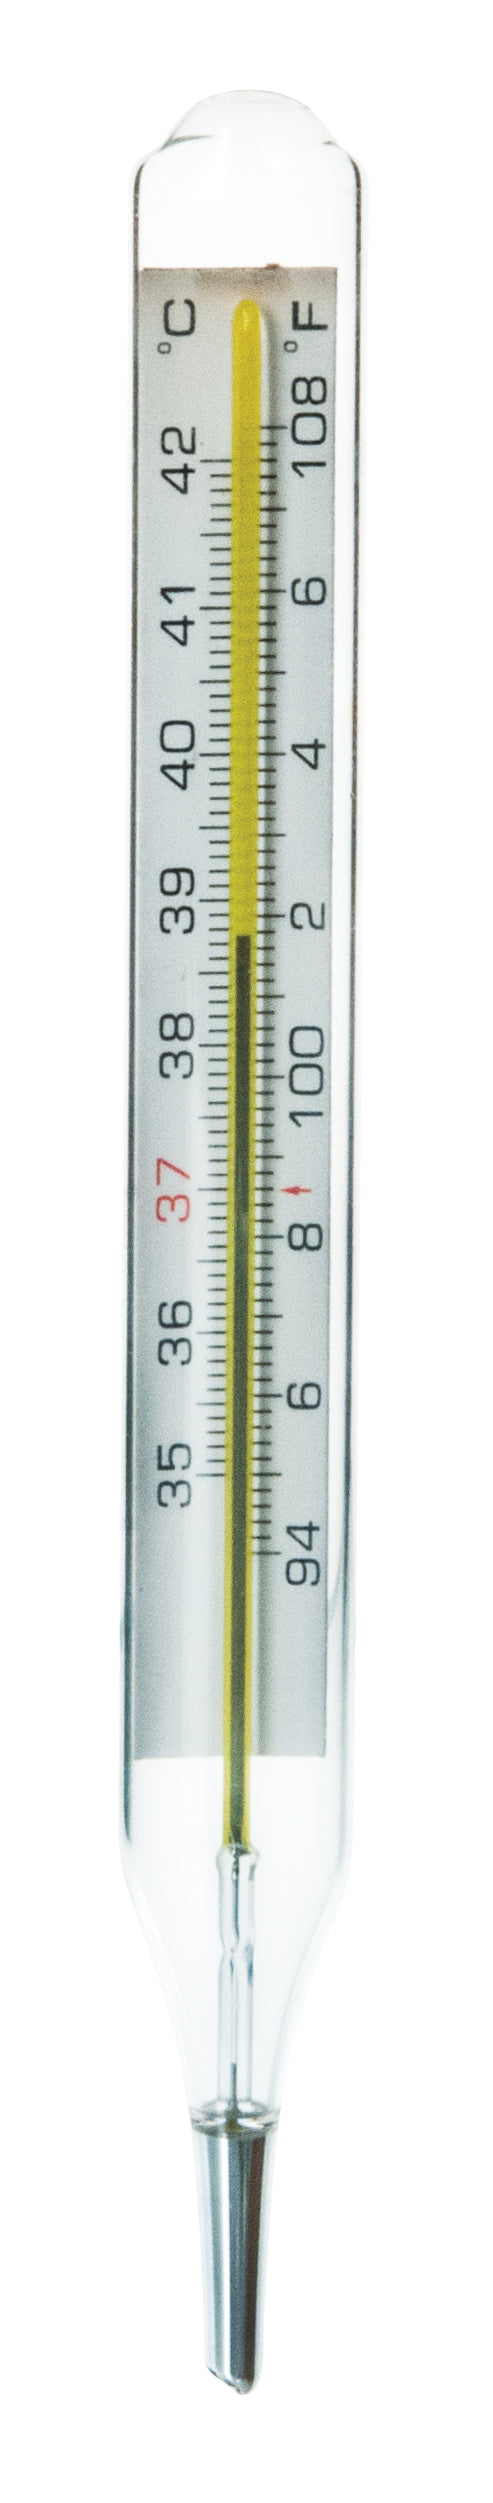 Clinical Thermometer Stick type